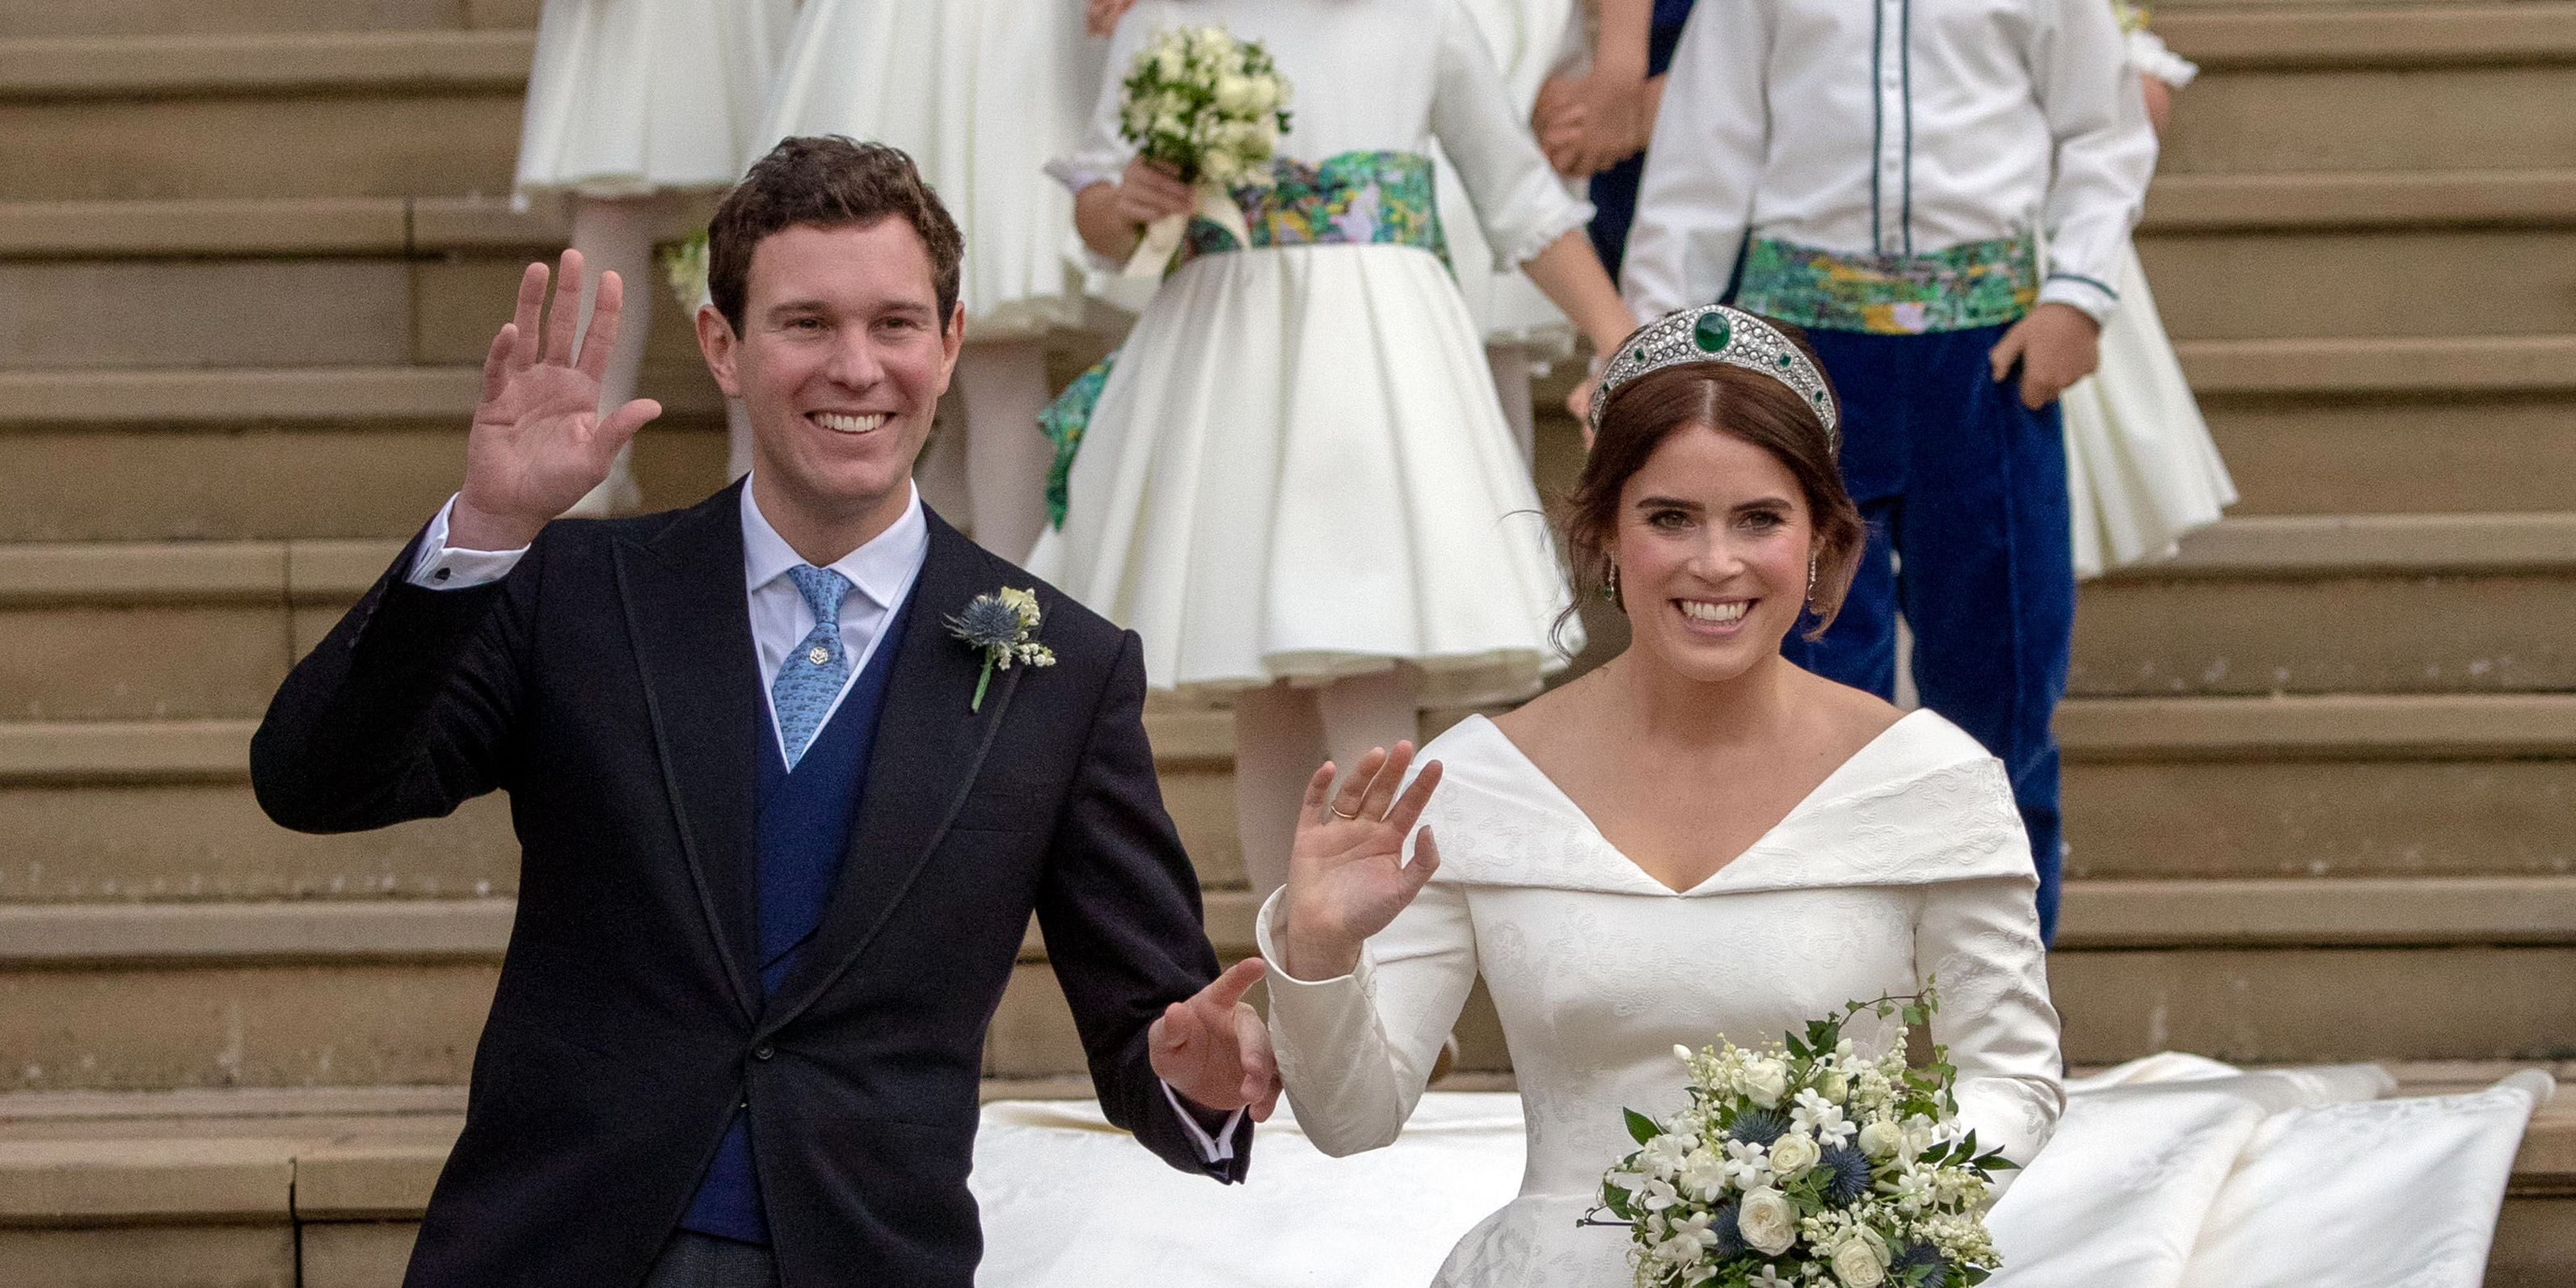 ROYALS-WEDDING-EUGENIE-CEREMONY